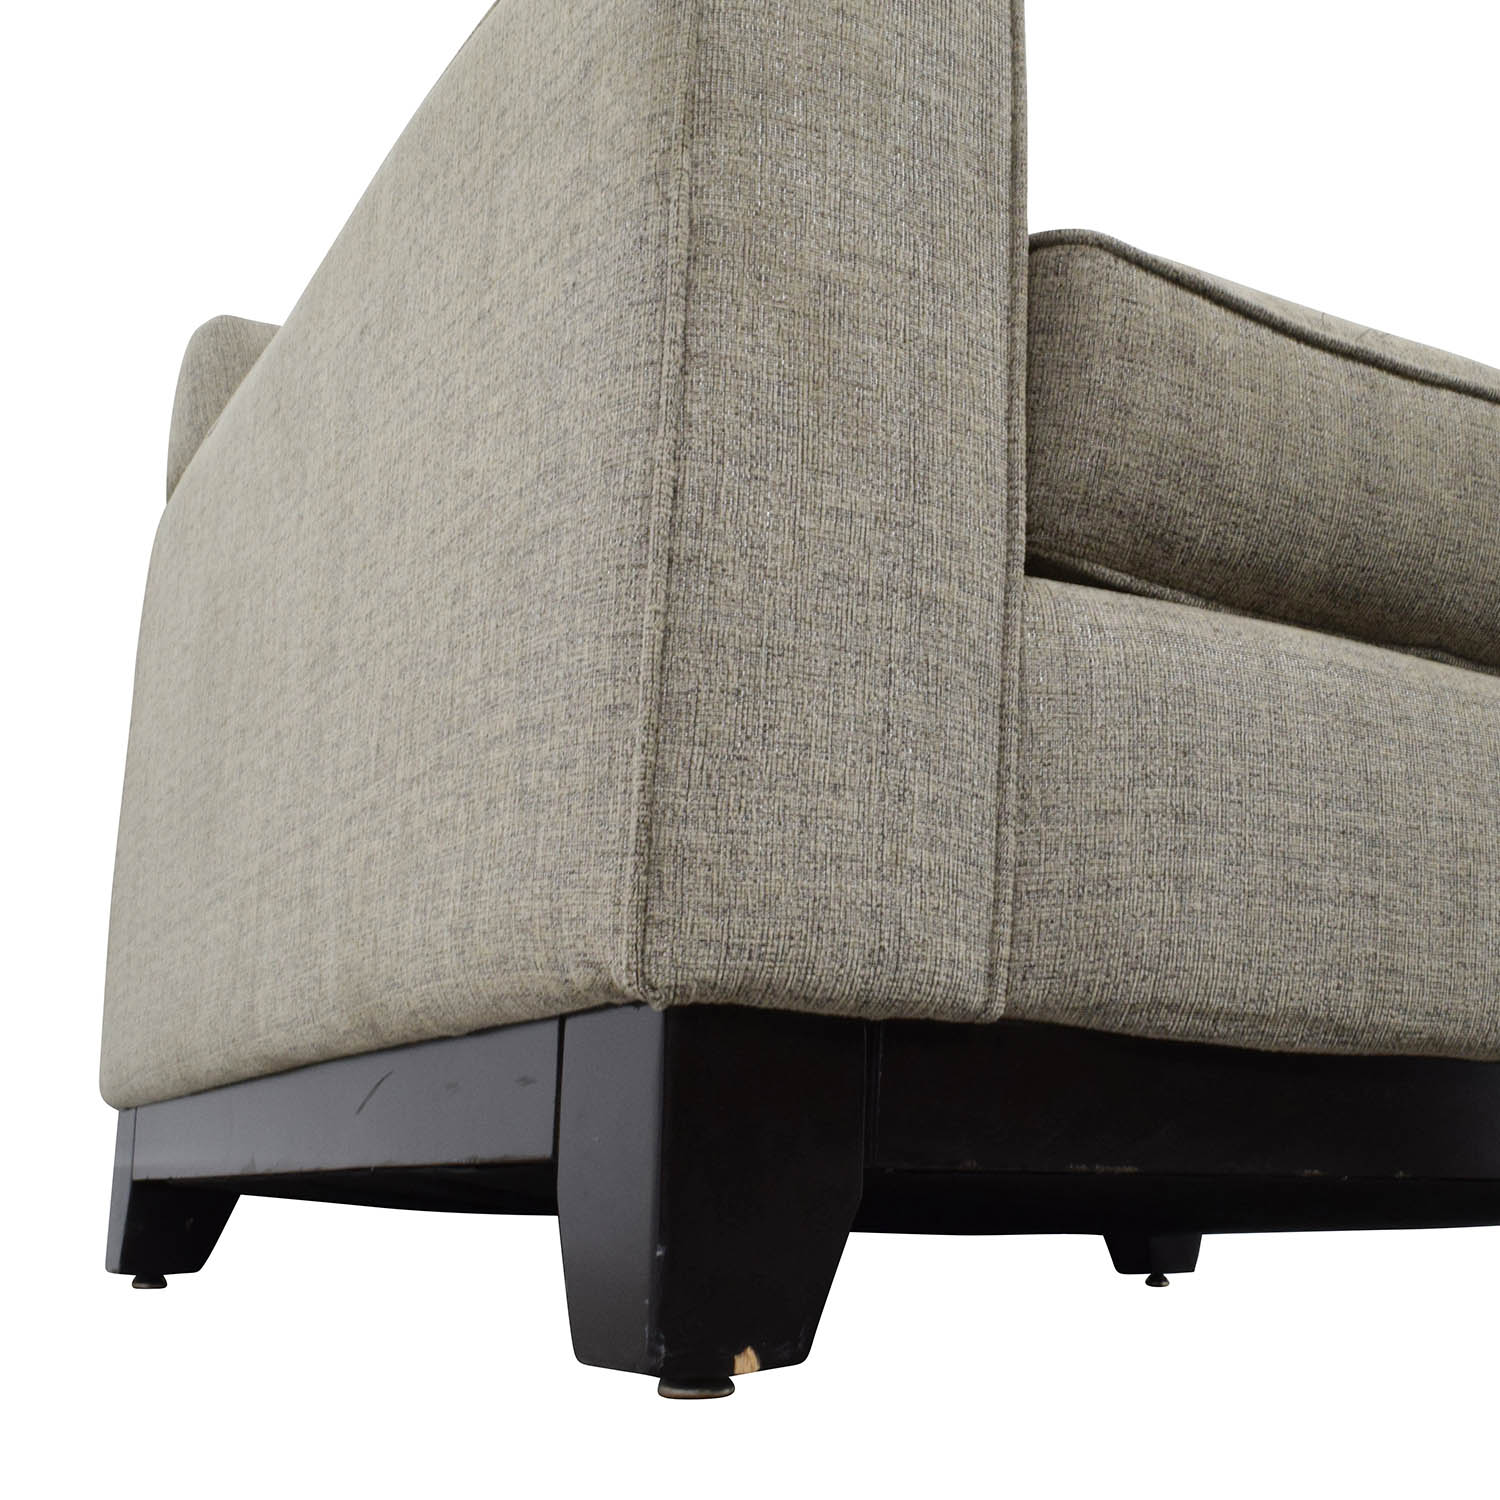 Macys Roselake Accent Chair With Otto: Macy's Macy's Clarke Grey Chair And Ottoman / Chairs